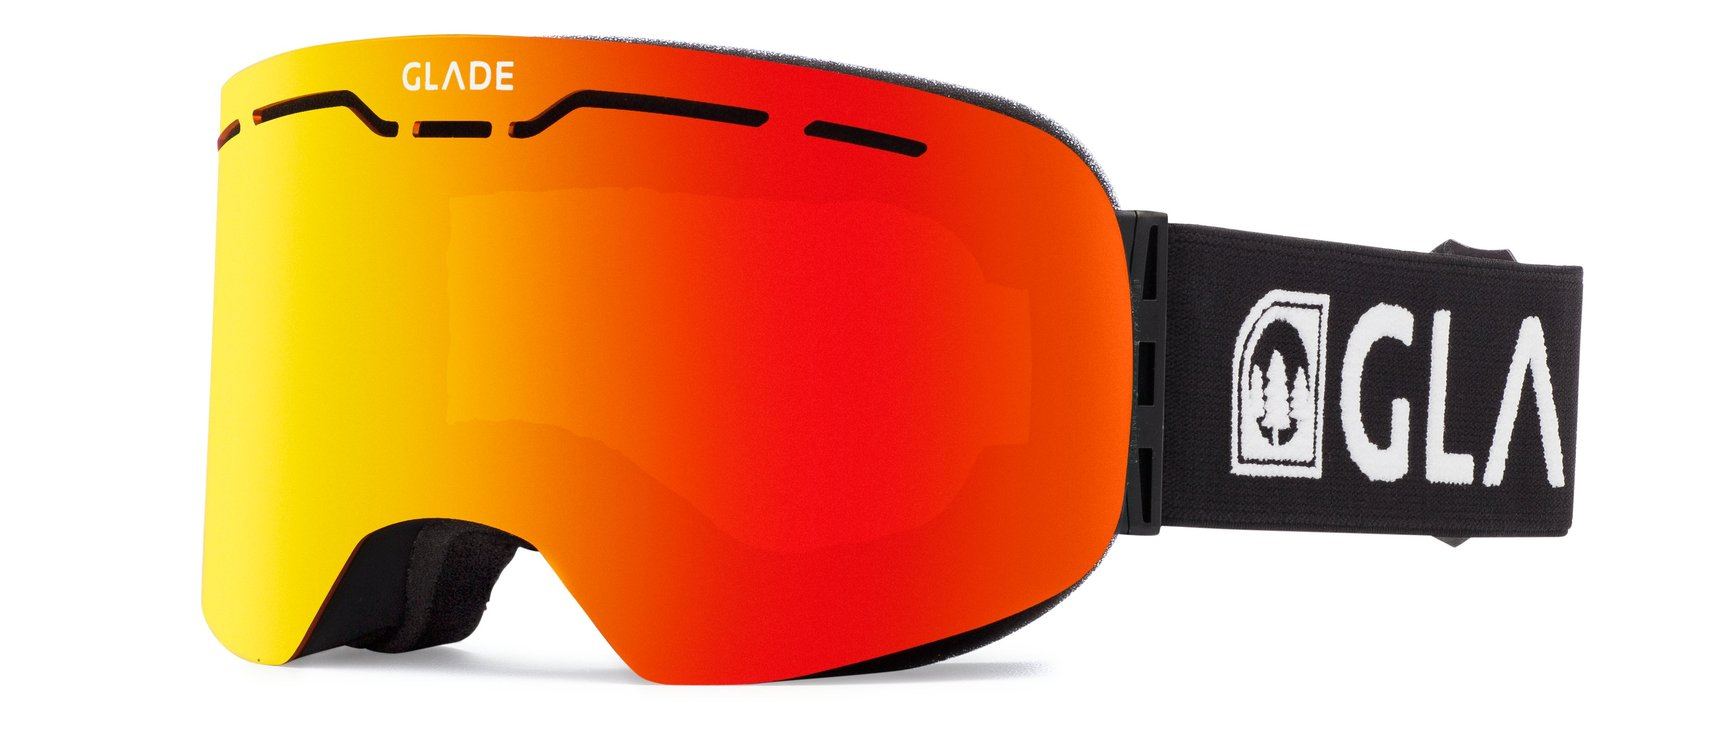 Glade Challenger Goggles